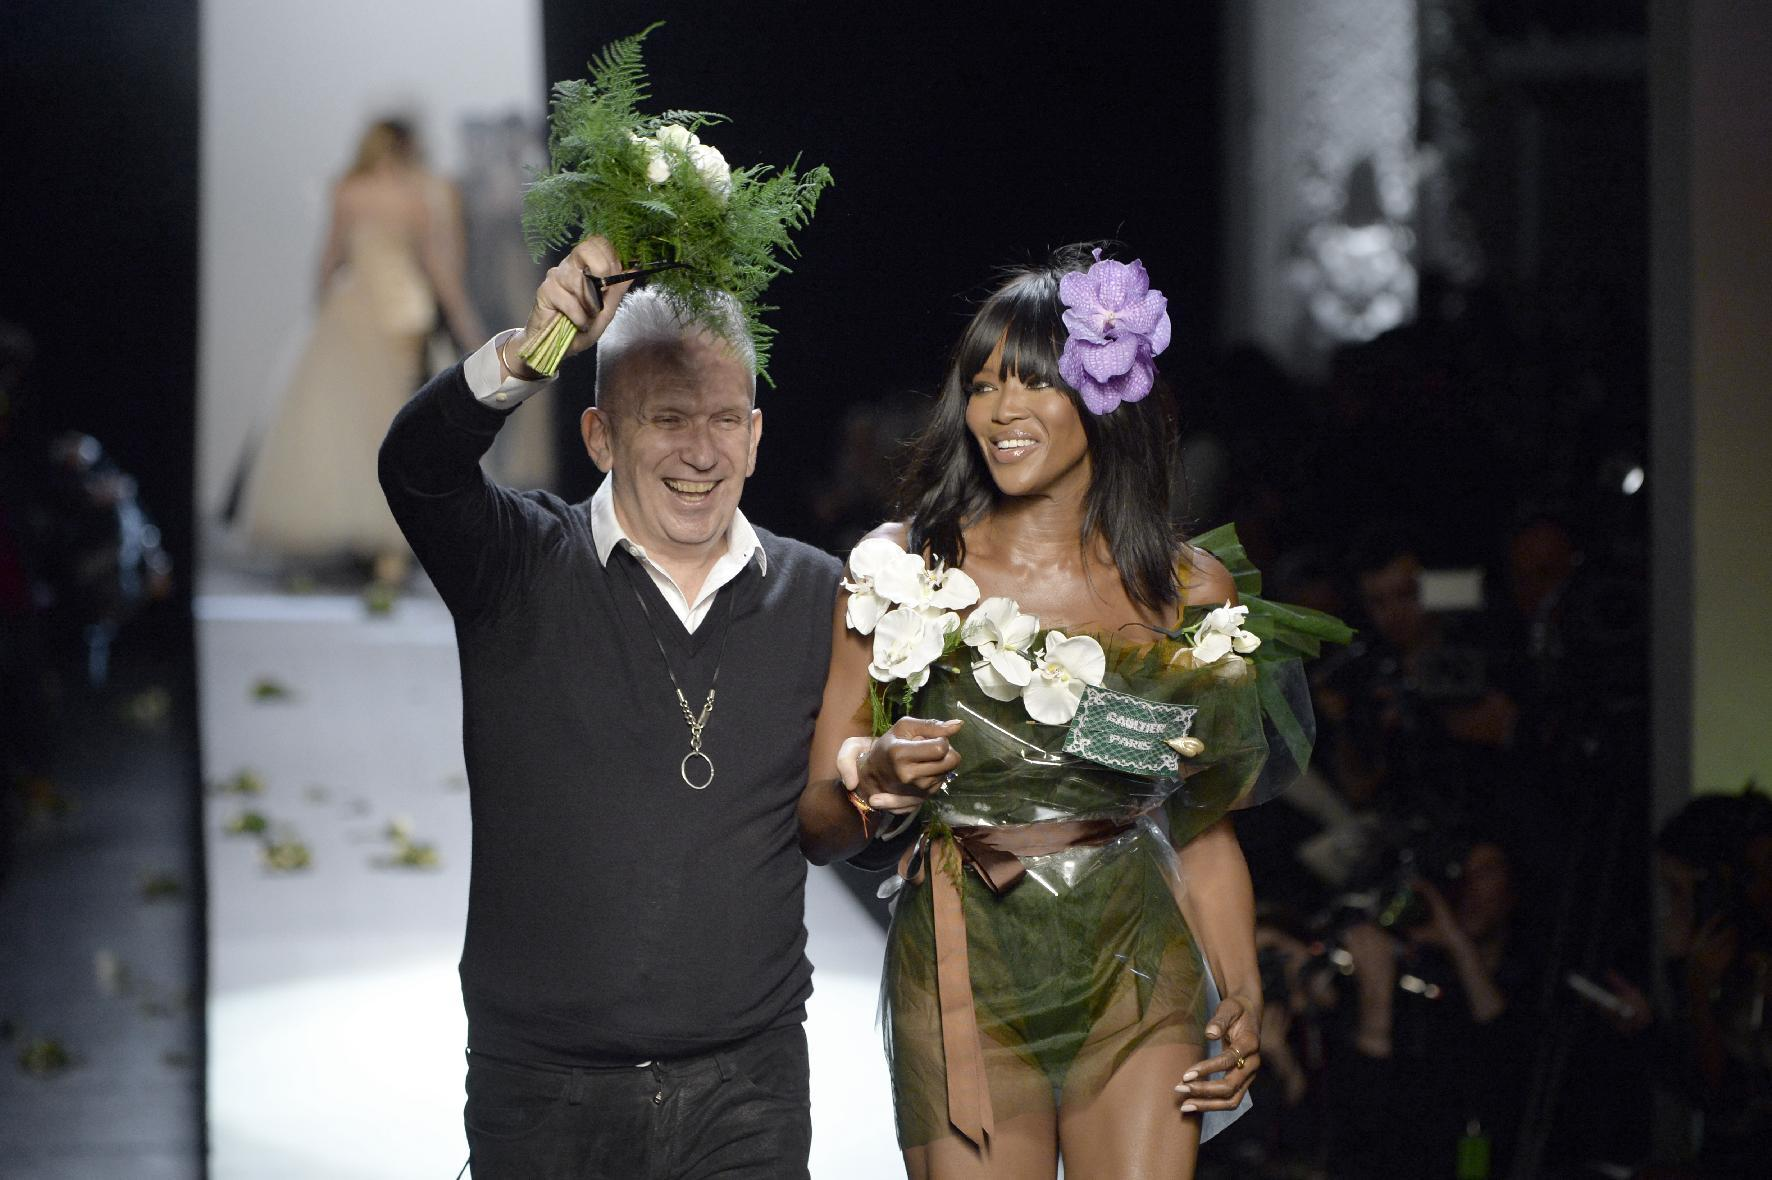 Jean-Paul Gaultier partners with Seven and I